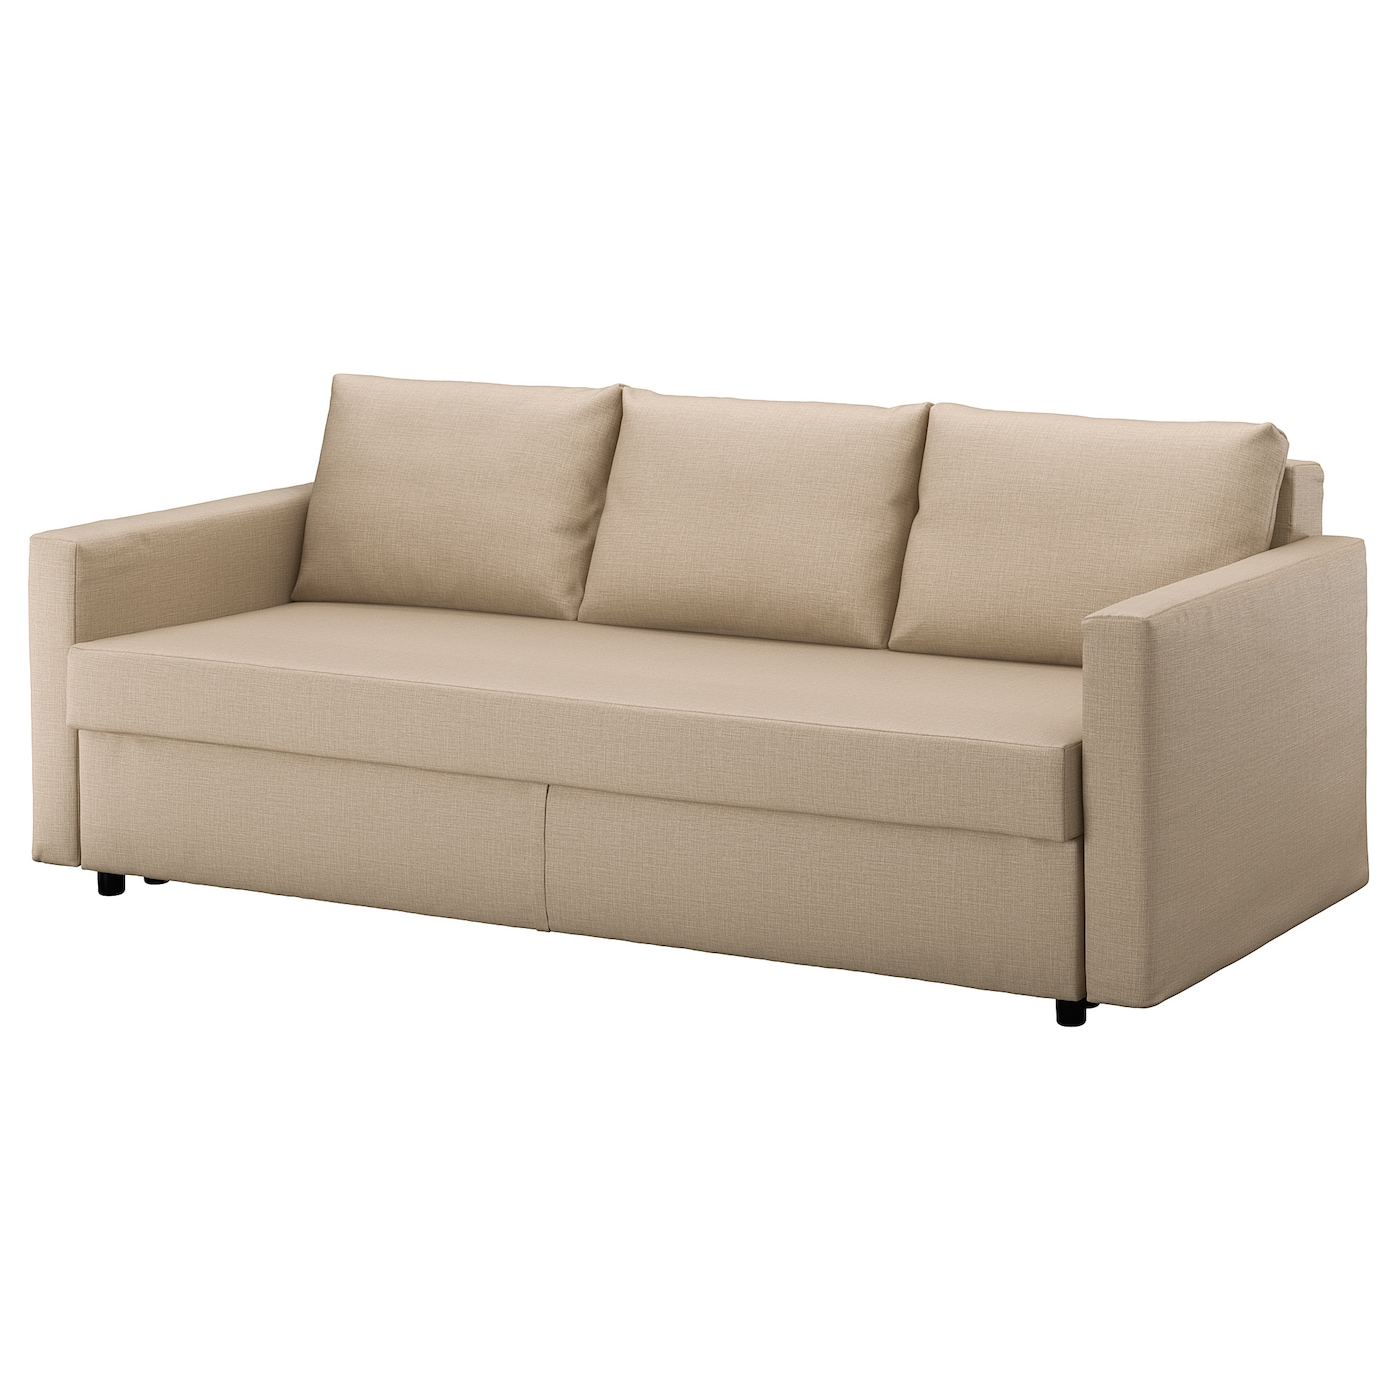 Friheten three seat sofa bed skiftebo beige ikea for Bettsofa jugendzimmer